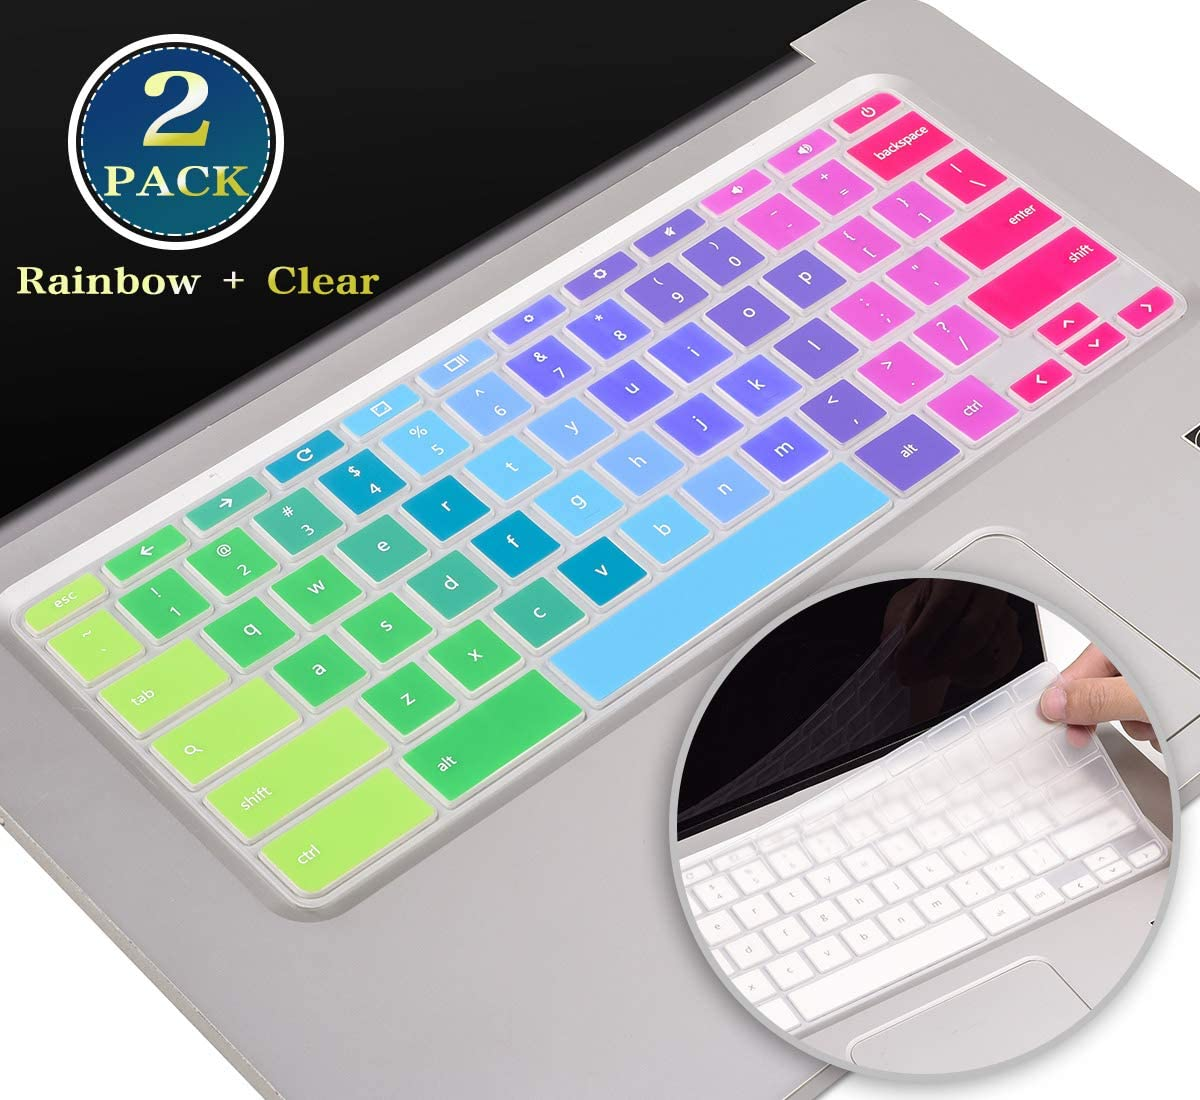 Colorful Keyboard Cover Skin for HP Chromebook 14 Inch 14-ca 14-db 14-ak, HP Chromebook 14 G2 G3 G4 G5 Series, HP Chromebook 11 G2, G3, G4, G5, G6 EE,G7 EE Series Protector(Rainbow+Clear)